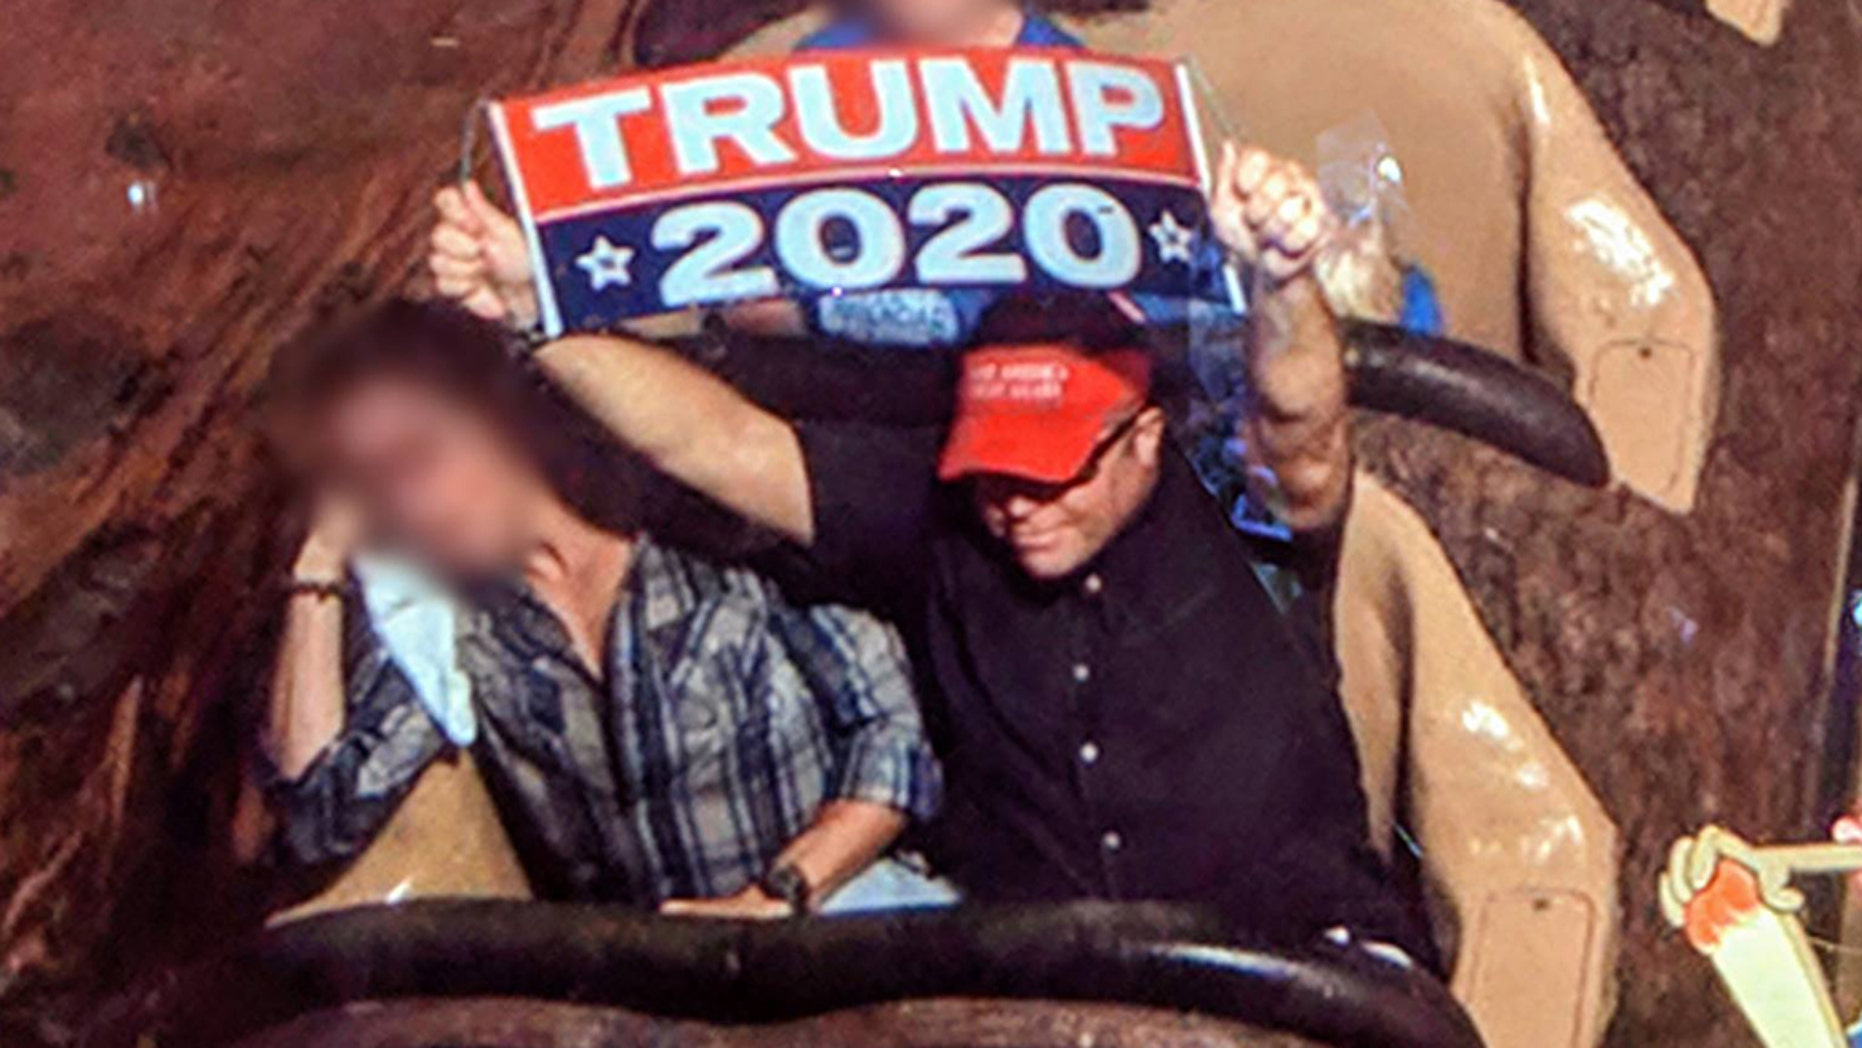 A man has been banned from Disney World for the second time after violating the rule that prohibits guest from displaying signs or banners at the park.